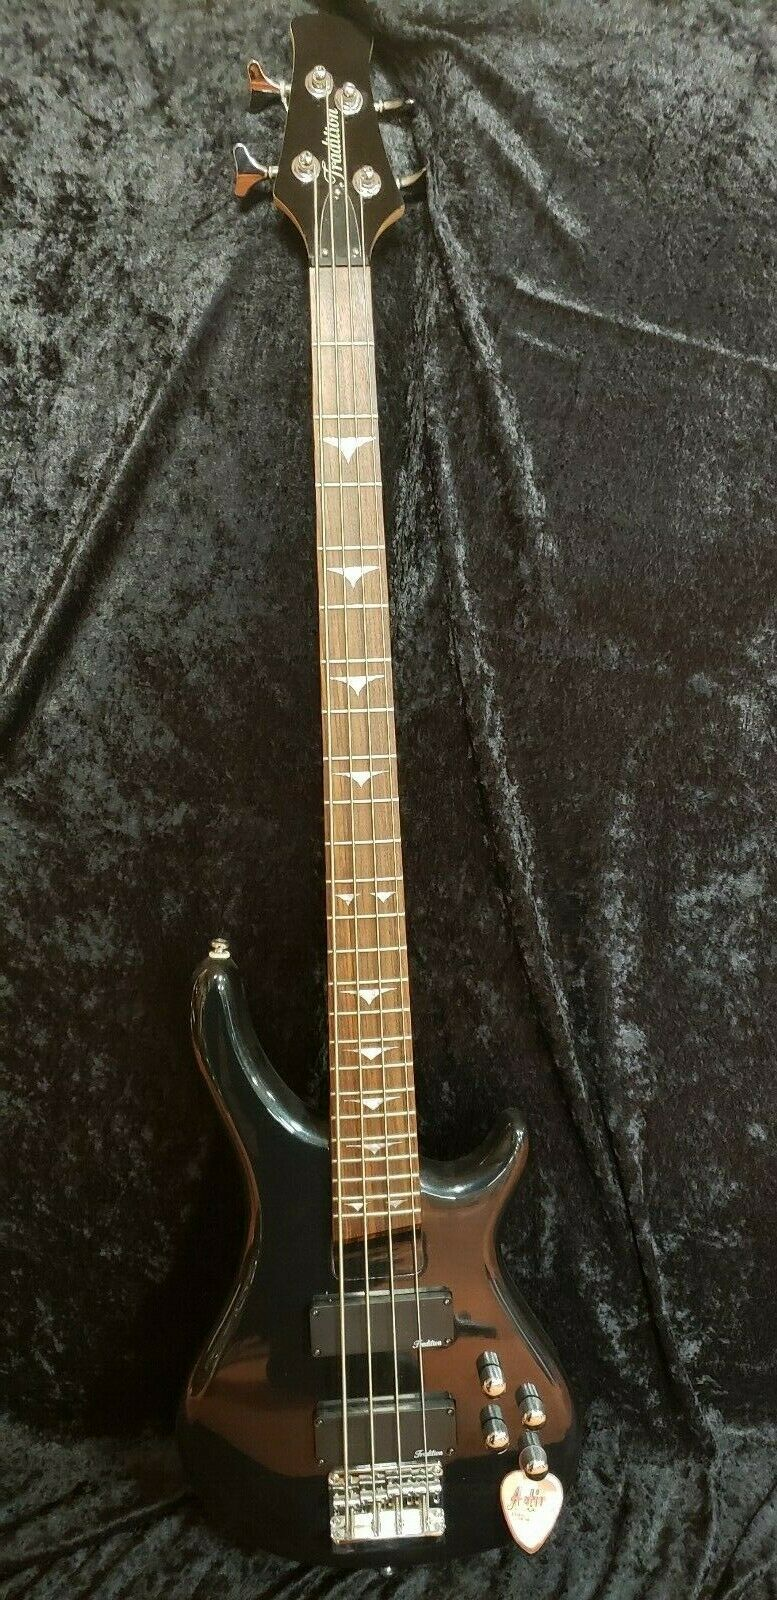 Tradition Electric Bass Guitar - Deep Grün Finish - New w Warrant - rotUCED